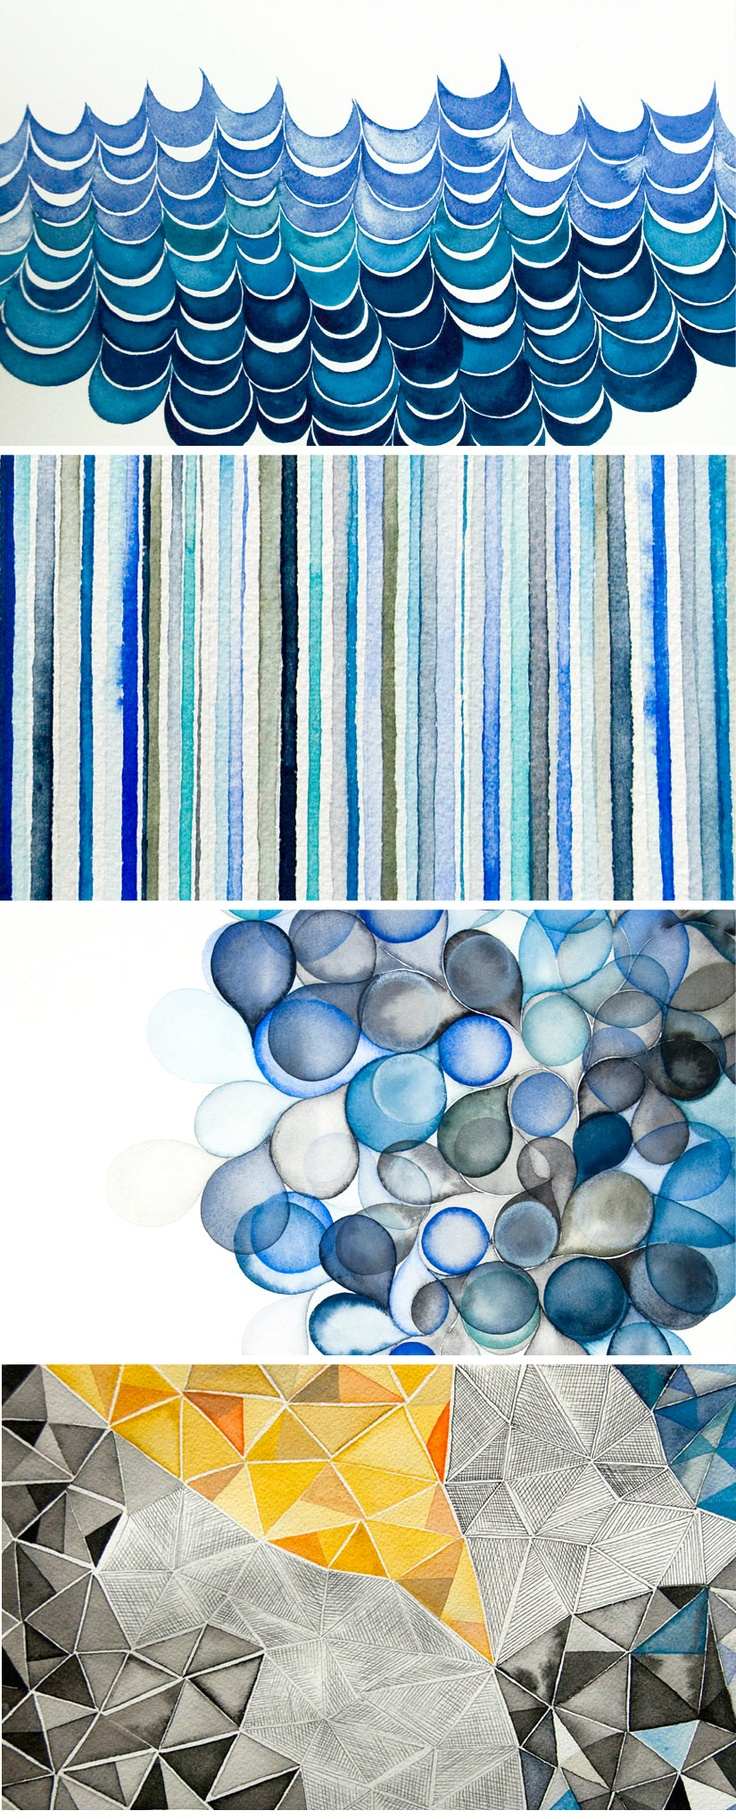 Love these geometric watercolor pieces by Serena Mitnik-Miller (via the fab mr. bazaar http://brightbazaar.blogspot.com/2012/08/serena-mitnik-miller-watercolours.html)